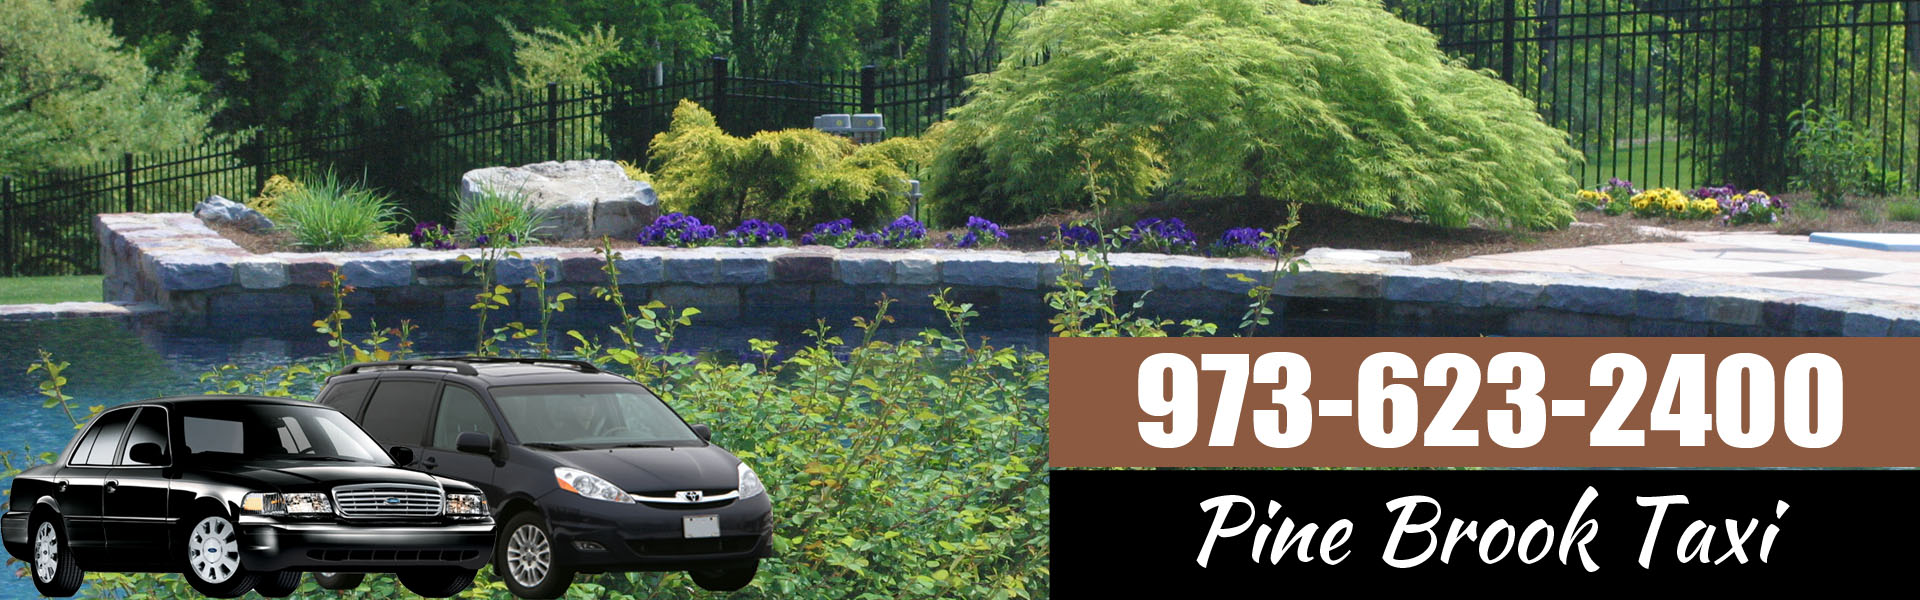 Pine Brook to Newark Airport Taxi Service